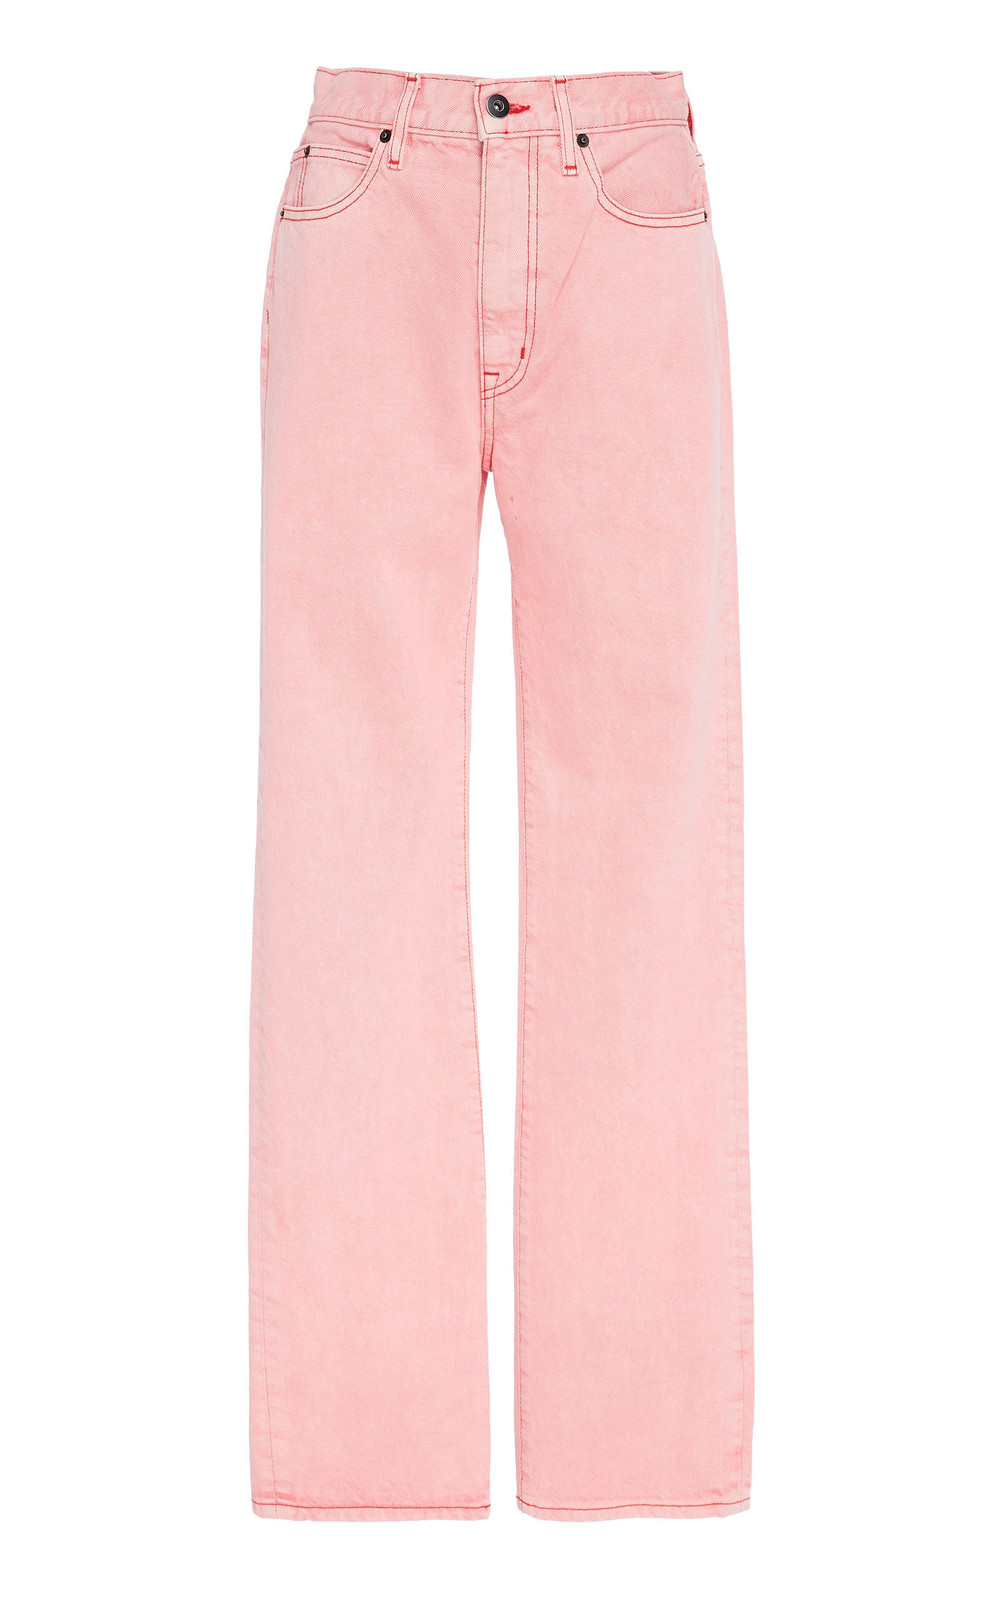 SLVRLAKE Denim London High-Rise Straight-Leg Jeans in pink